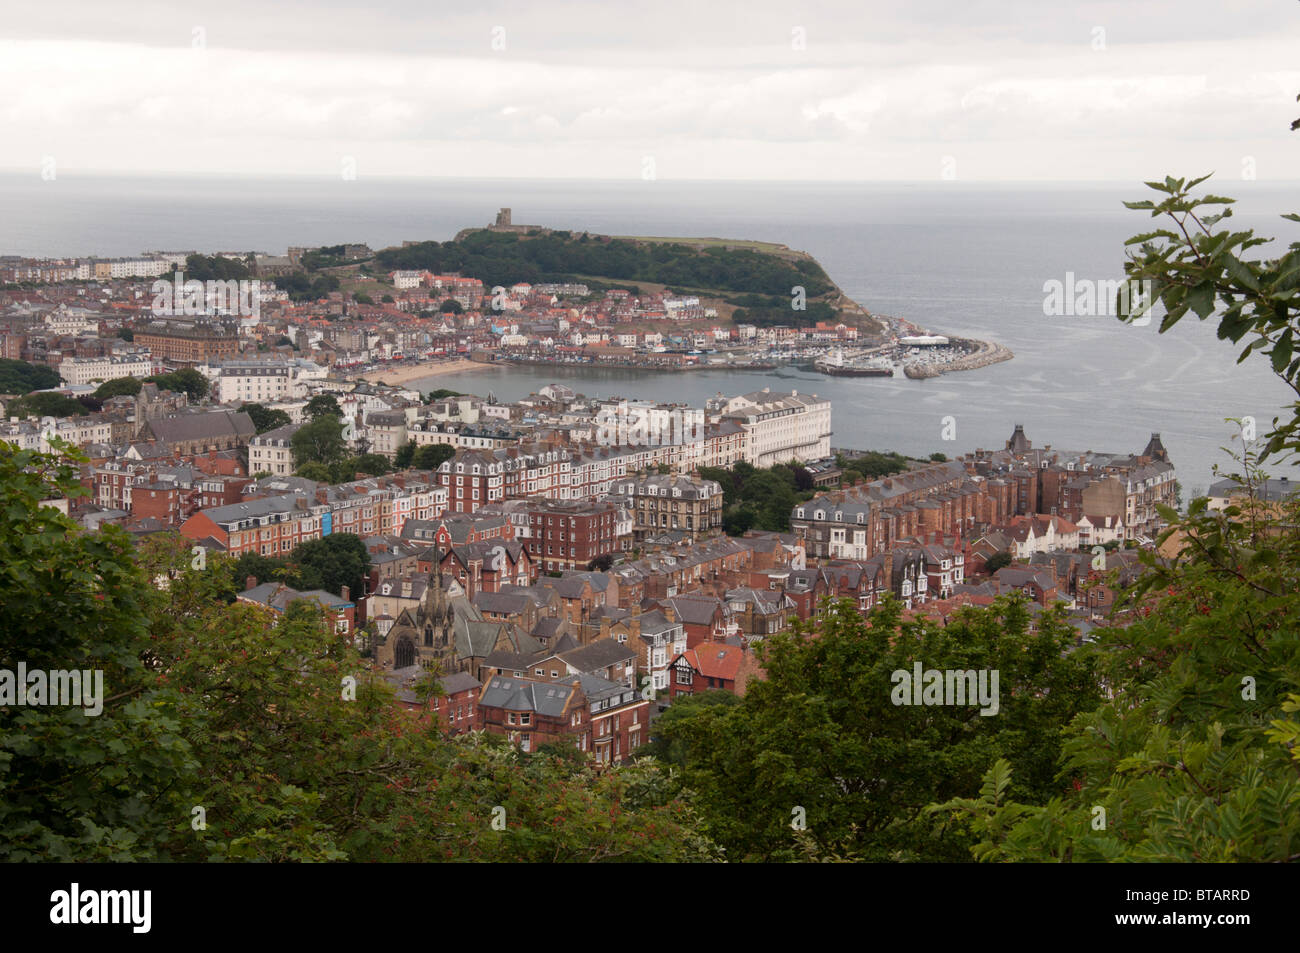 Wide shot of Scarborough taken from Olivers Mount. - Stock Image